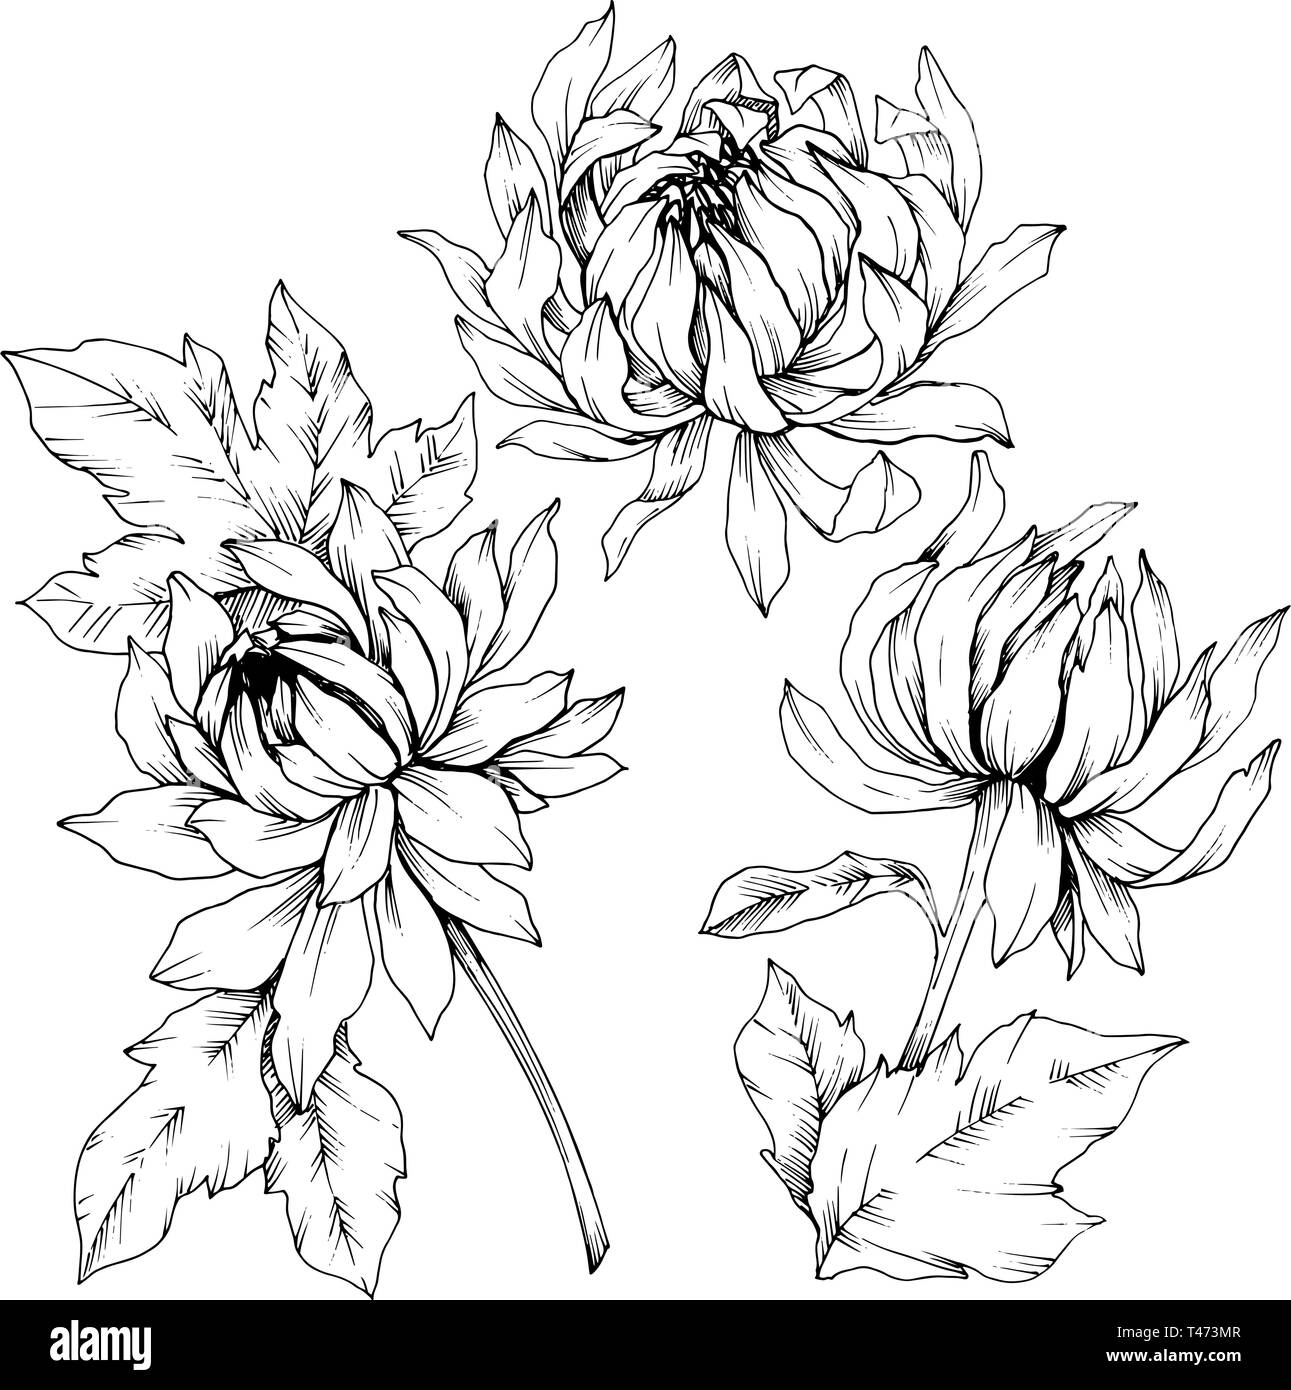 Vector Chrysanthemum Floral Botanical Flowers Black And White Engraved Ink Art Isolated Flower Illustration Element Stock Vector Image Art Alamy